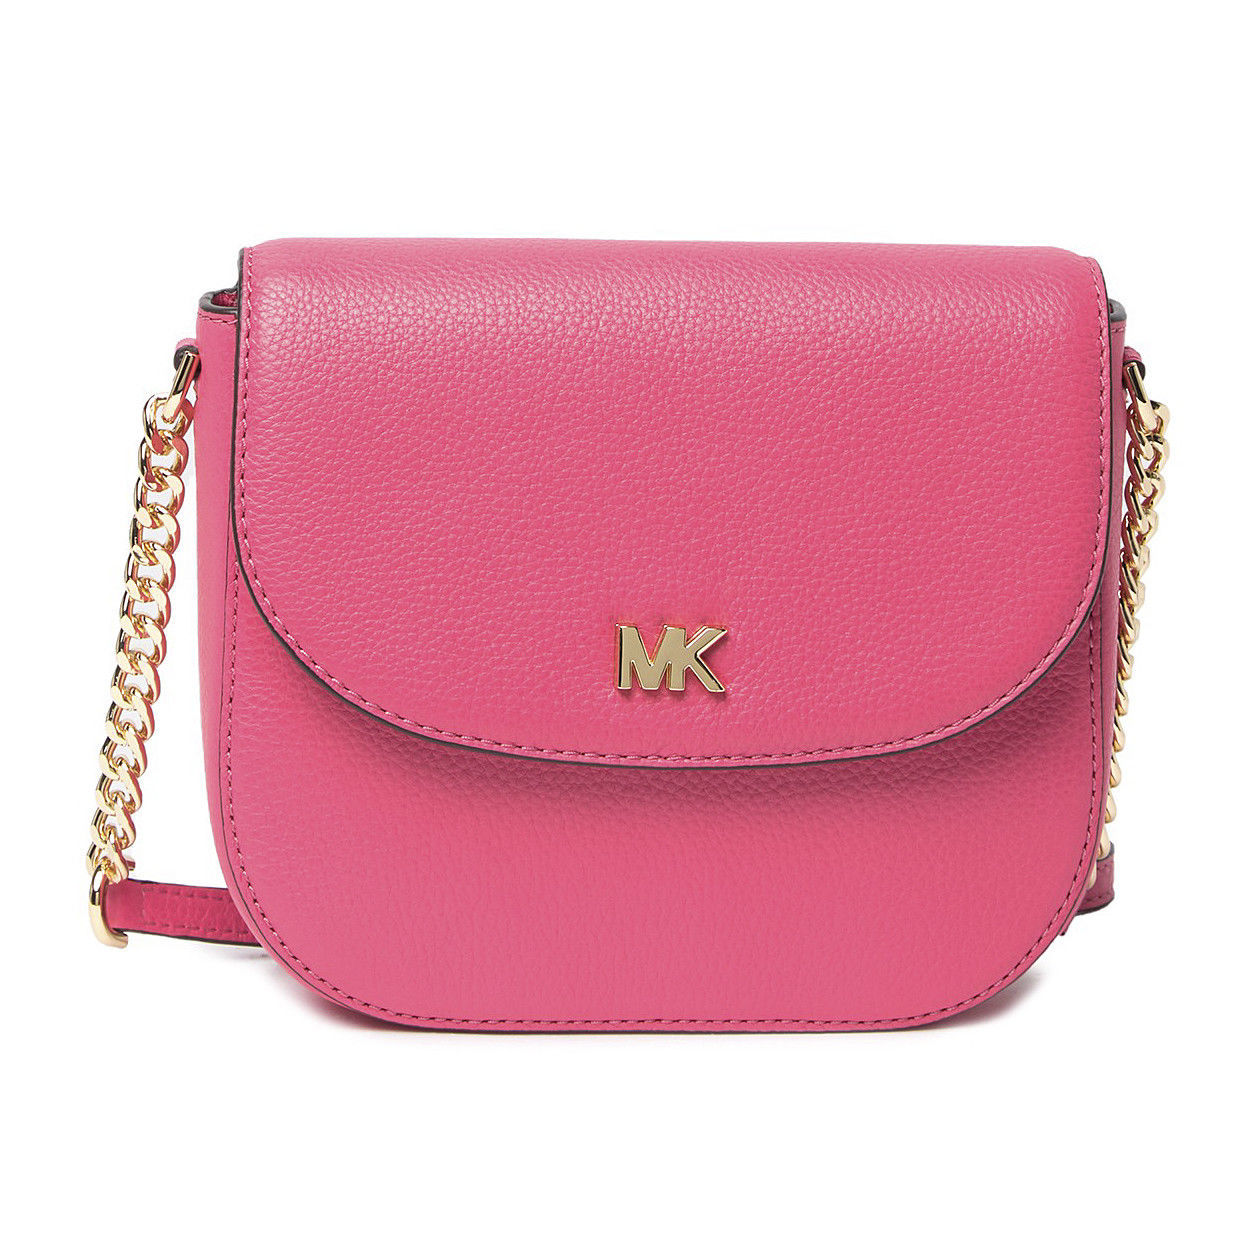 24160f13bbe3ff Michael Kors Deep Pink Leather Gold Hardware and 50 similar items. S l1600